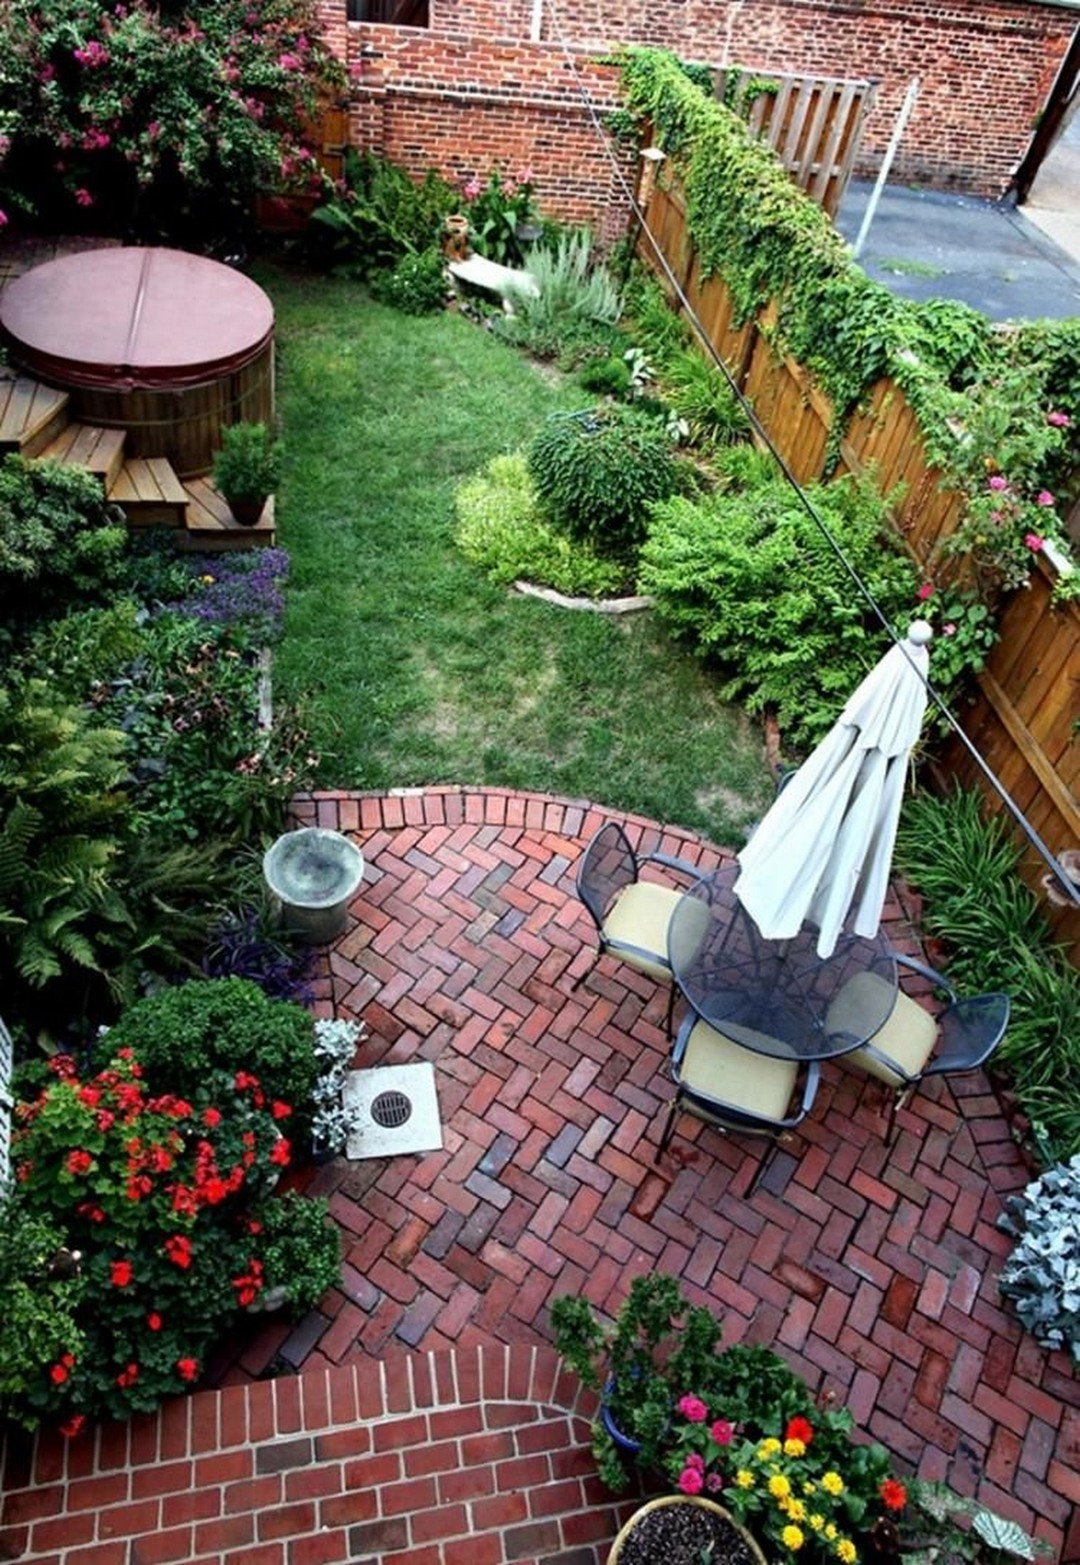 21.SIMPHOME.COM 10 great tips and ideas to create backyard privacy landscaping